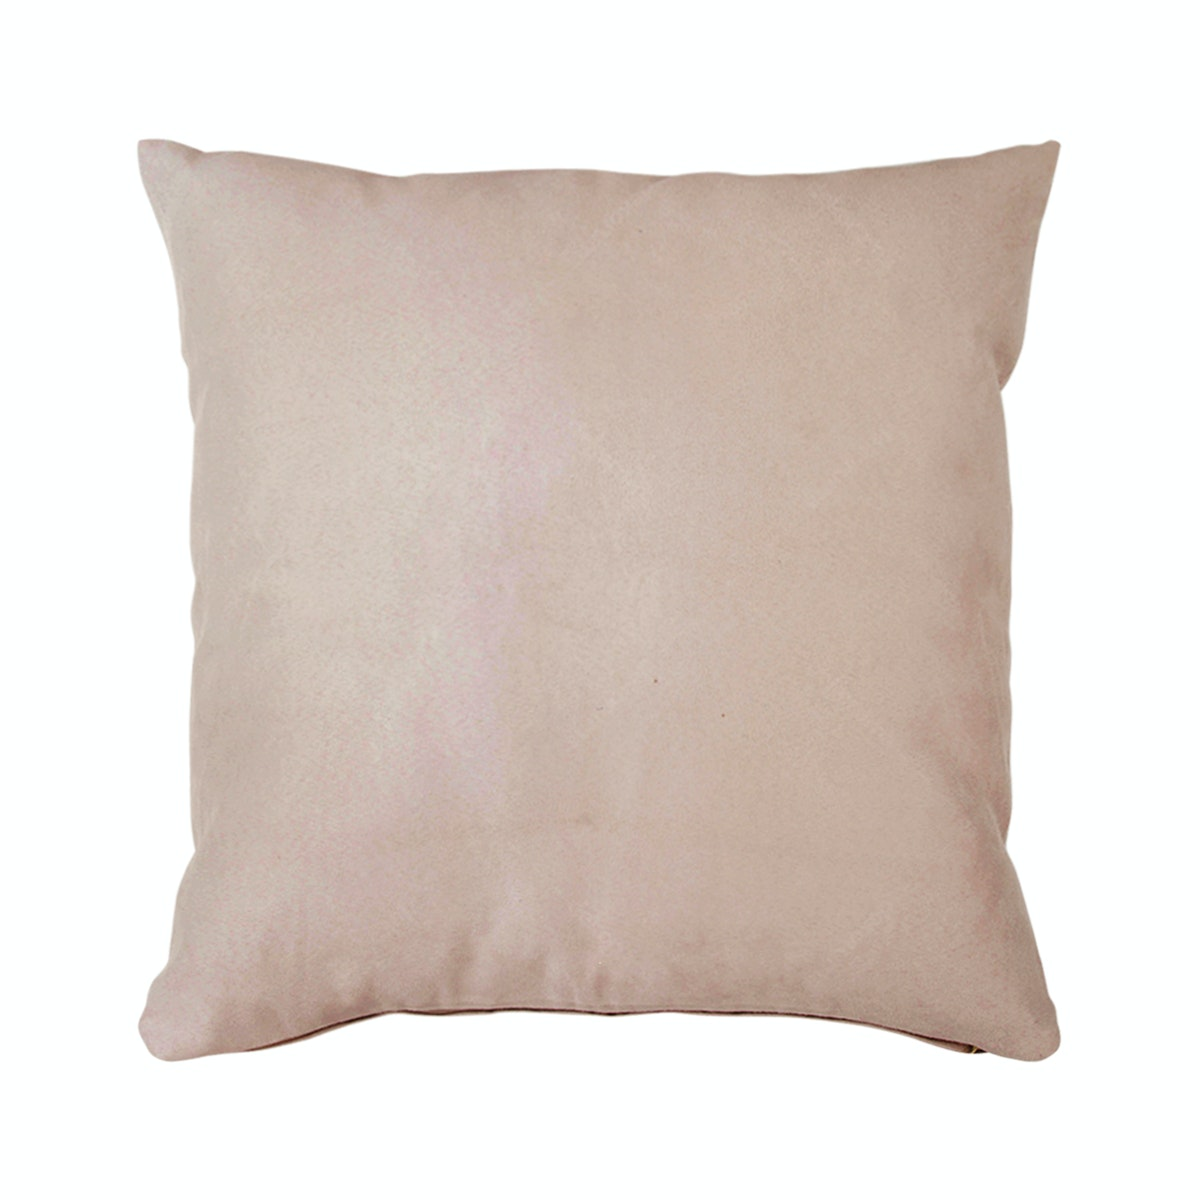 Le Atelier Glossy Cream Cushion Cover 45x45cm